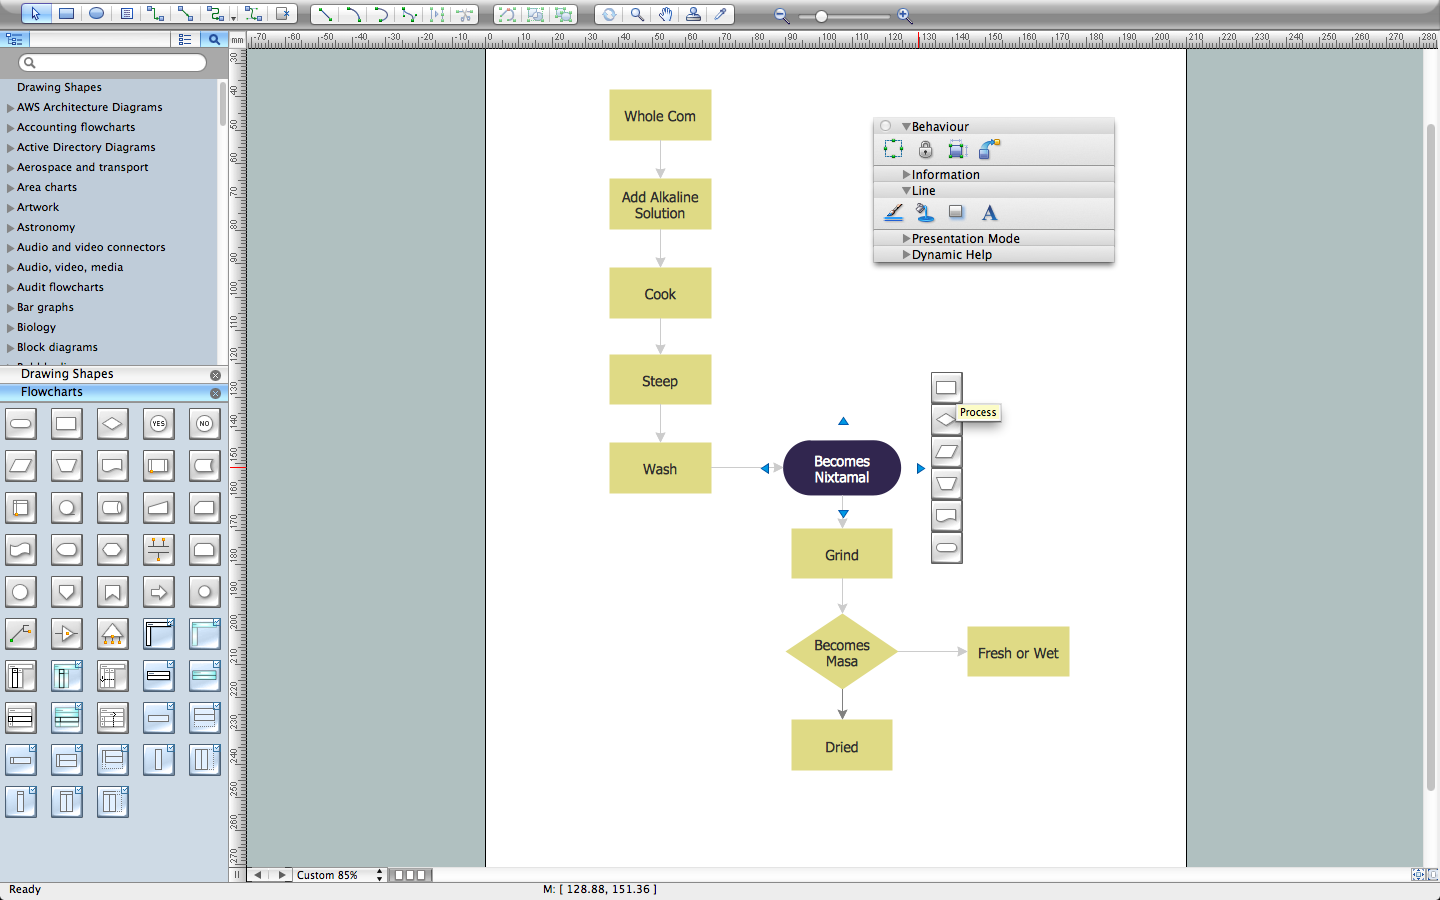 Process flowchart basic flowchart symbols and meaning data flowchart software nvjuhfo Gallery